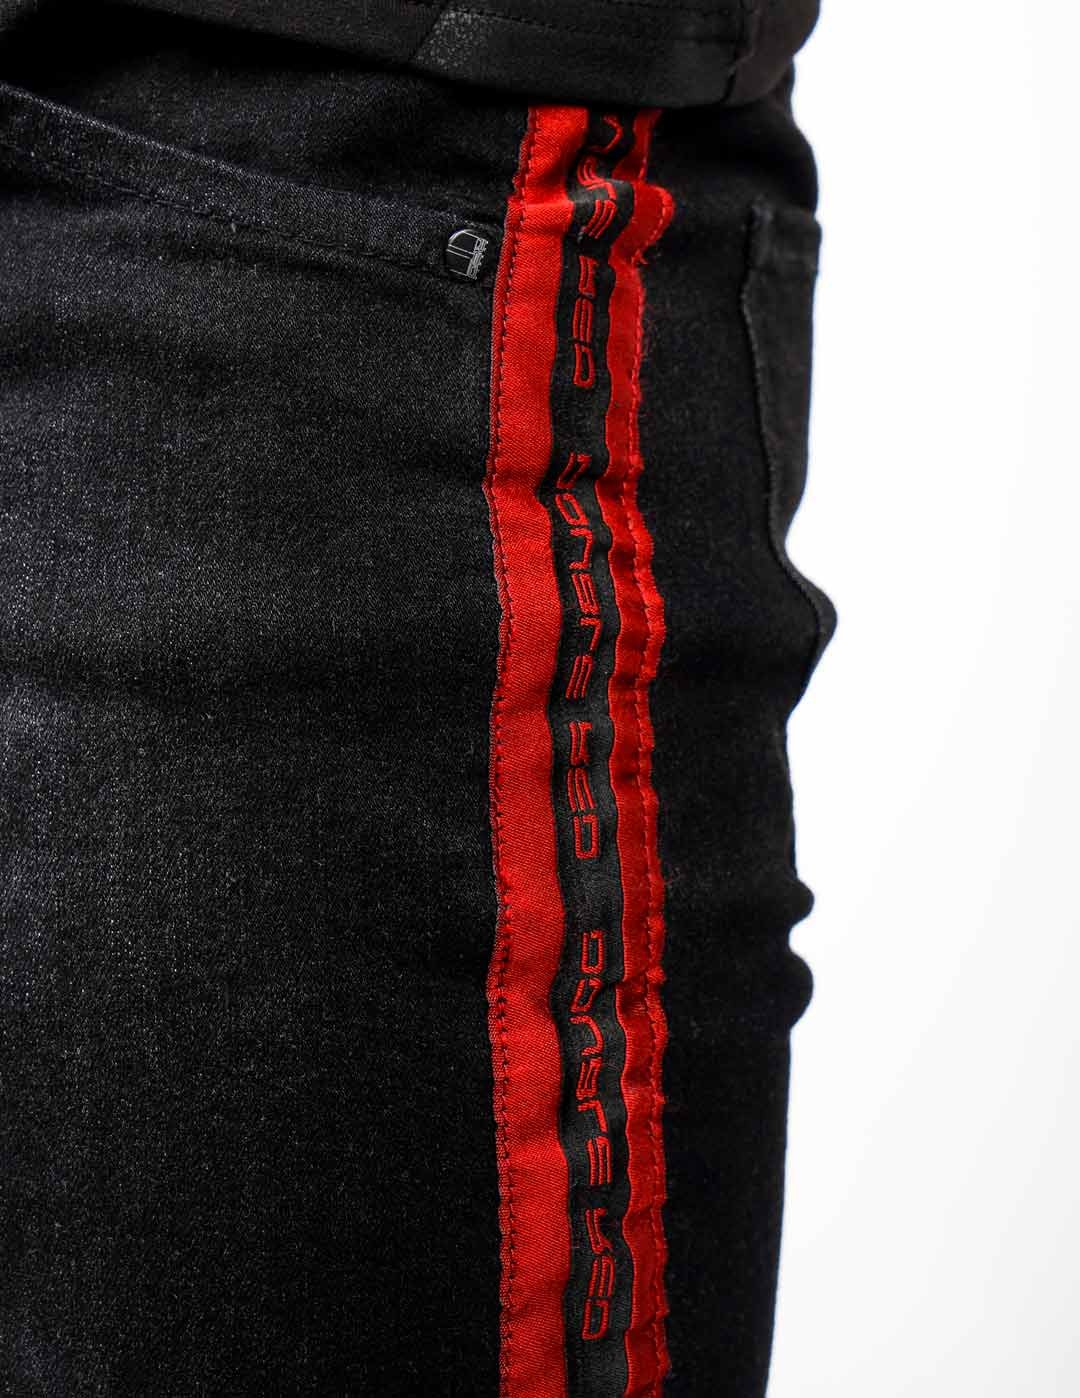 RED JEANS Shorts Black